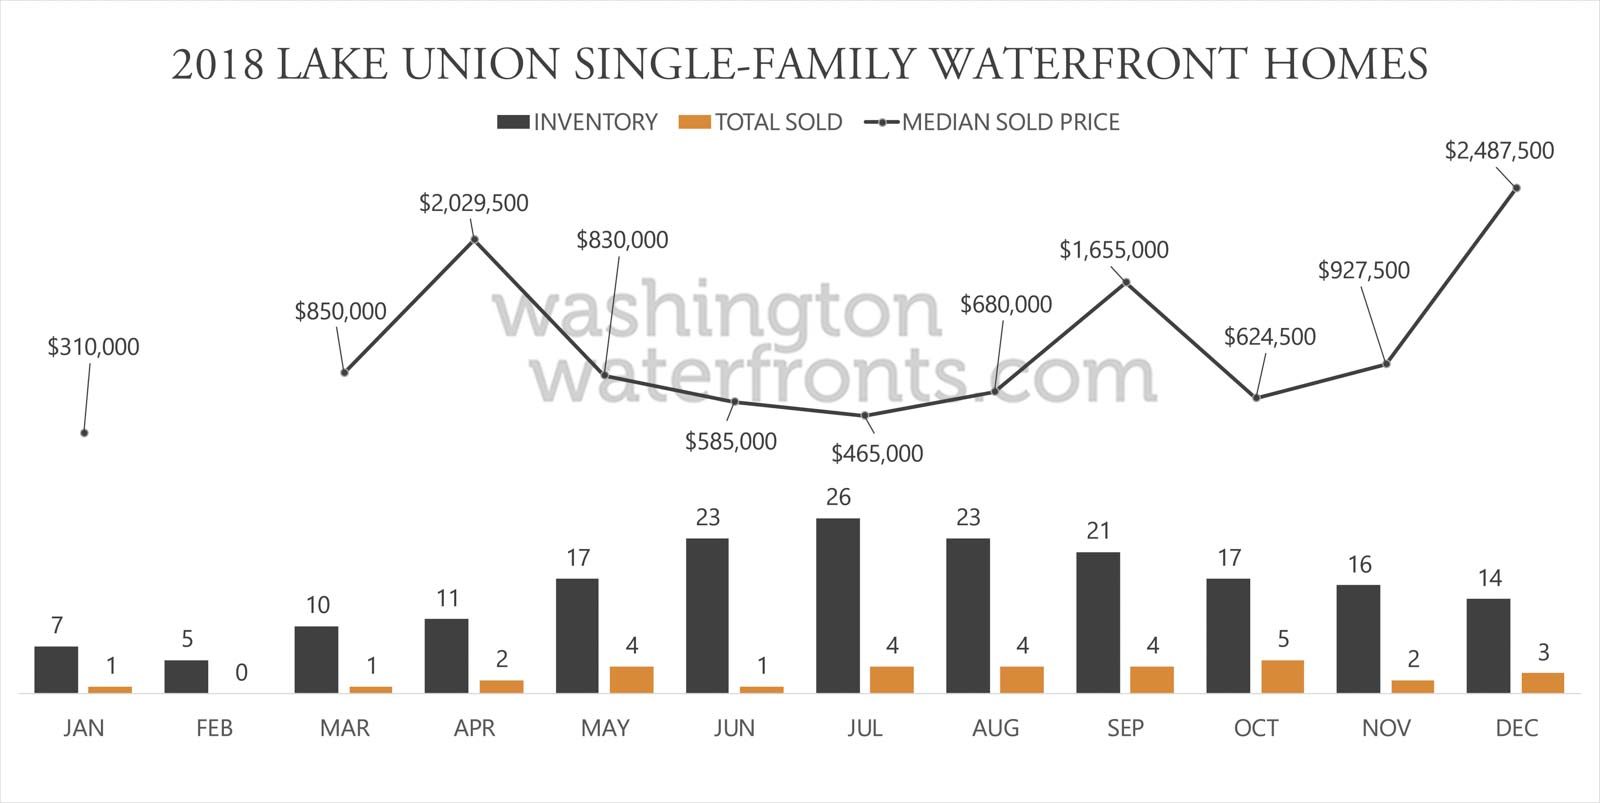 Lake Union Waterfront Inventory